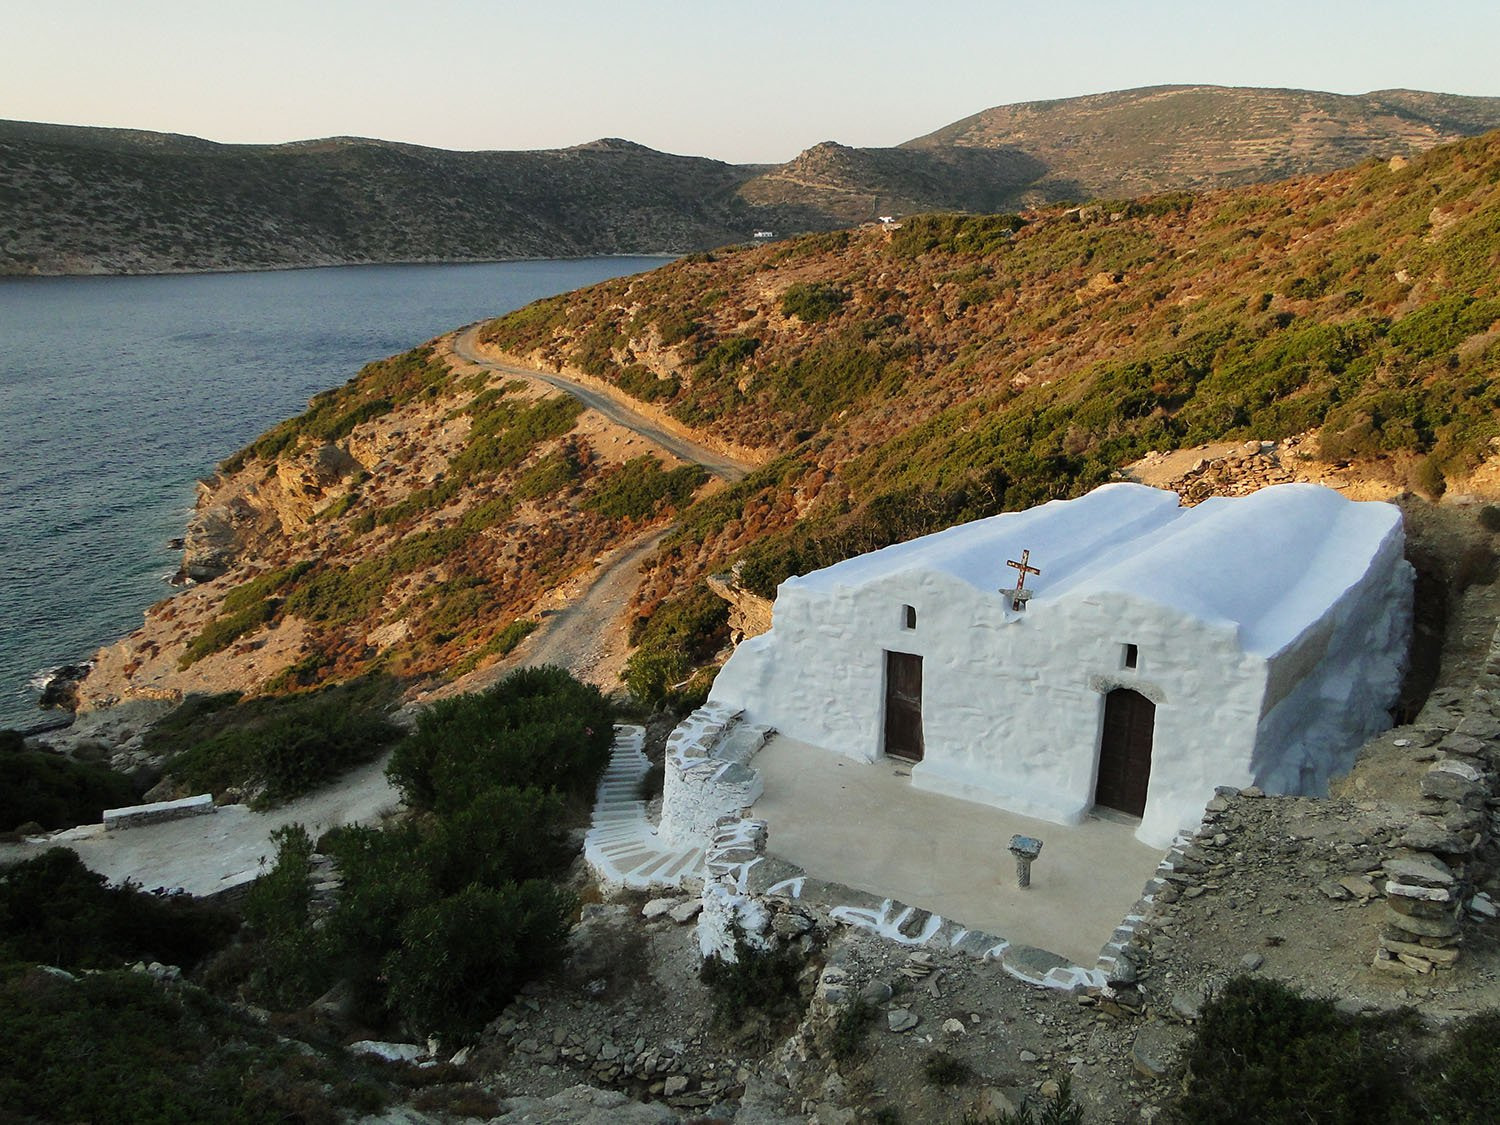 Agioi Anargyroi Chapel in Katapola on Amorgos